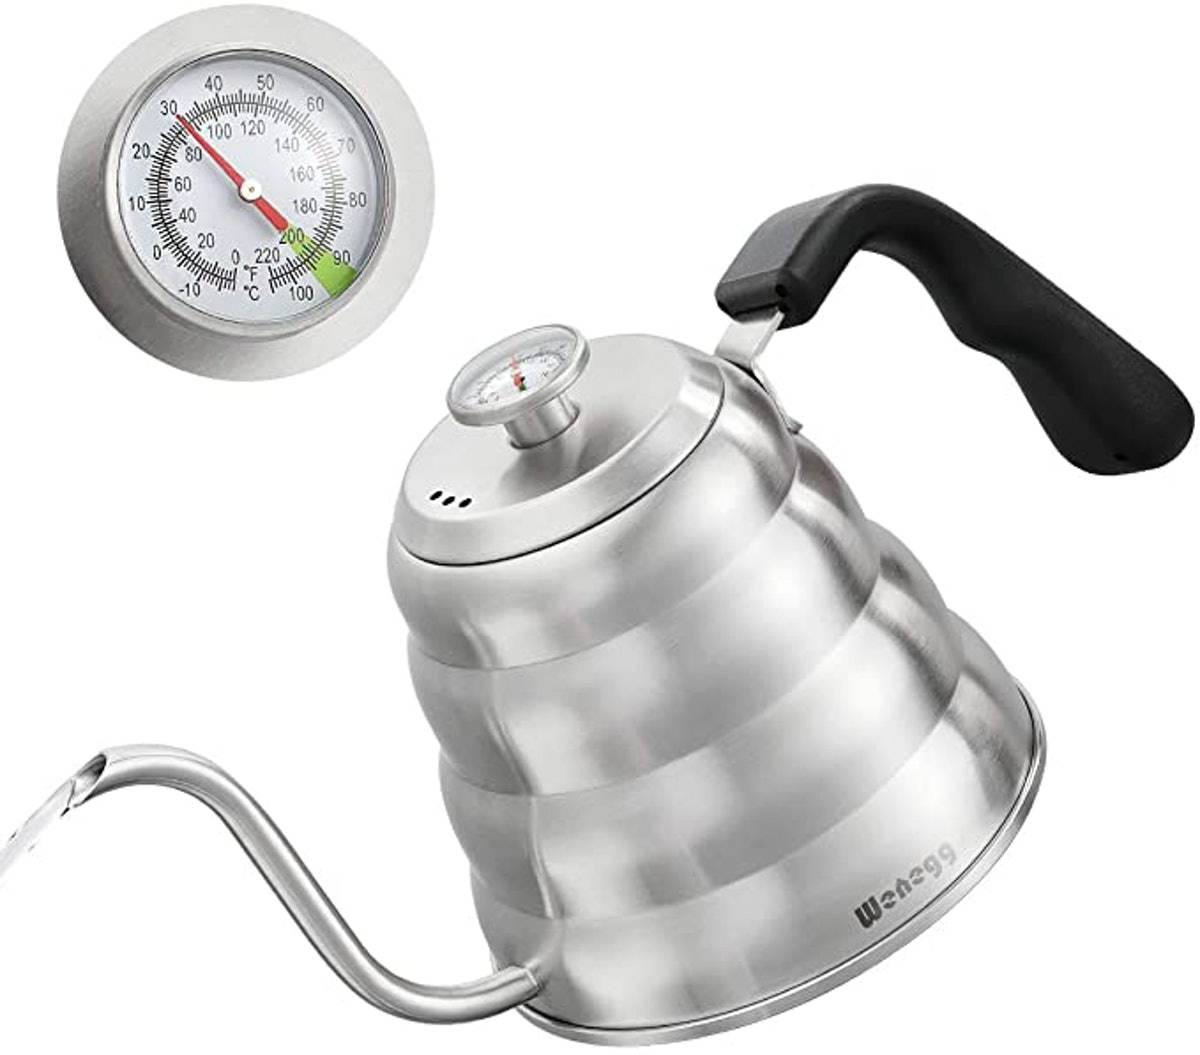 WENEGG Pour Over Coffee Kettle